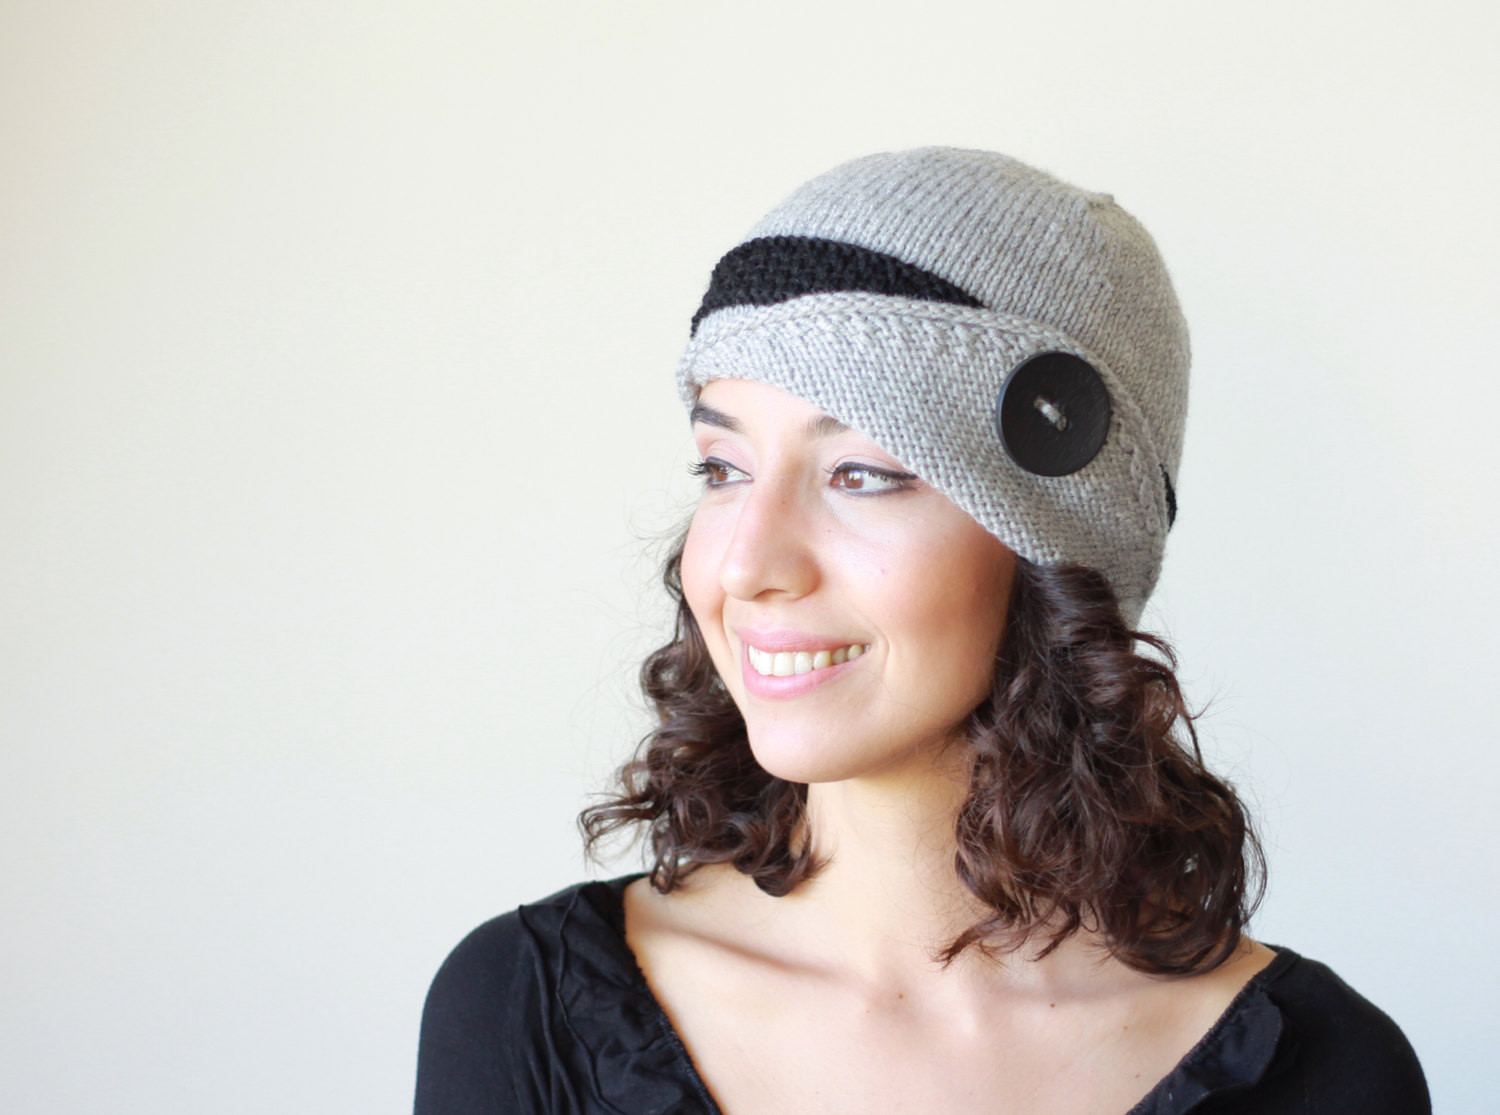 Womens Knit Hats Inspirational Grey Knit Hat Womens Knit Hat Lucy Hat Grey Winter Beanie Of Innovative 50 Images Womens Knit Hats